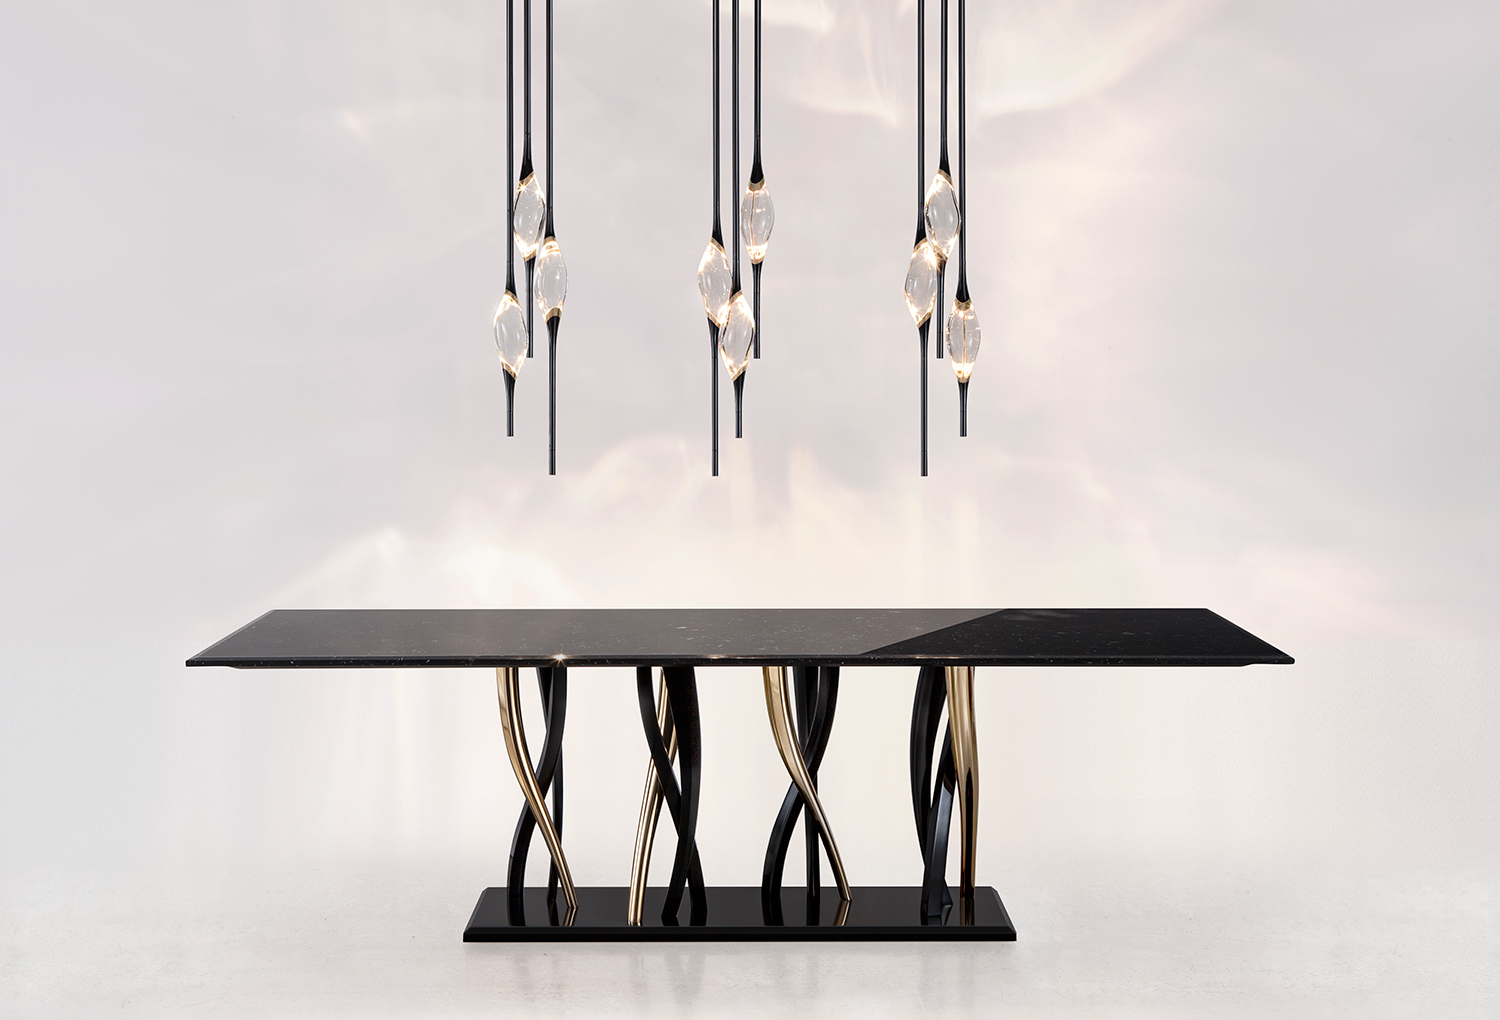 Il Pezzo 12 is a LED chandelier made of brass and crystal Made in Italy